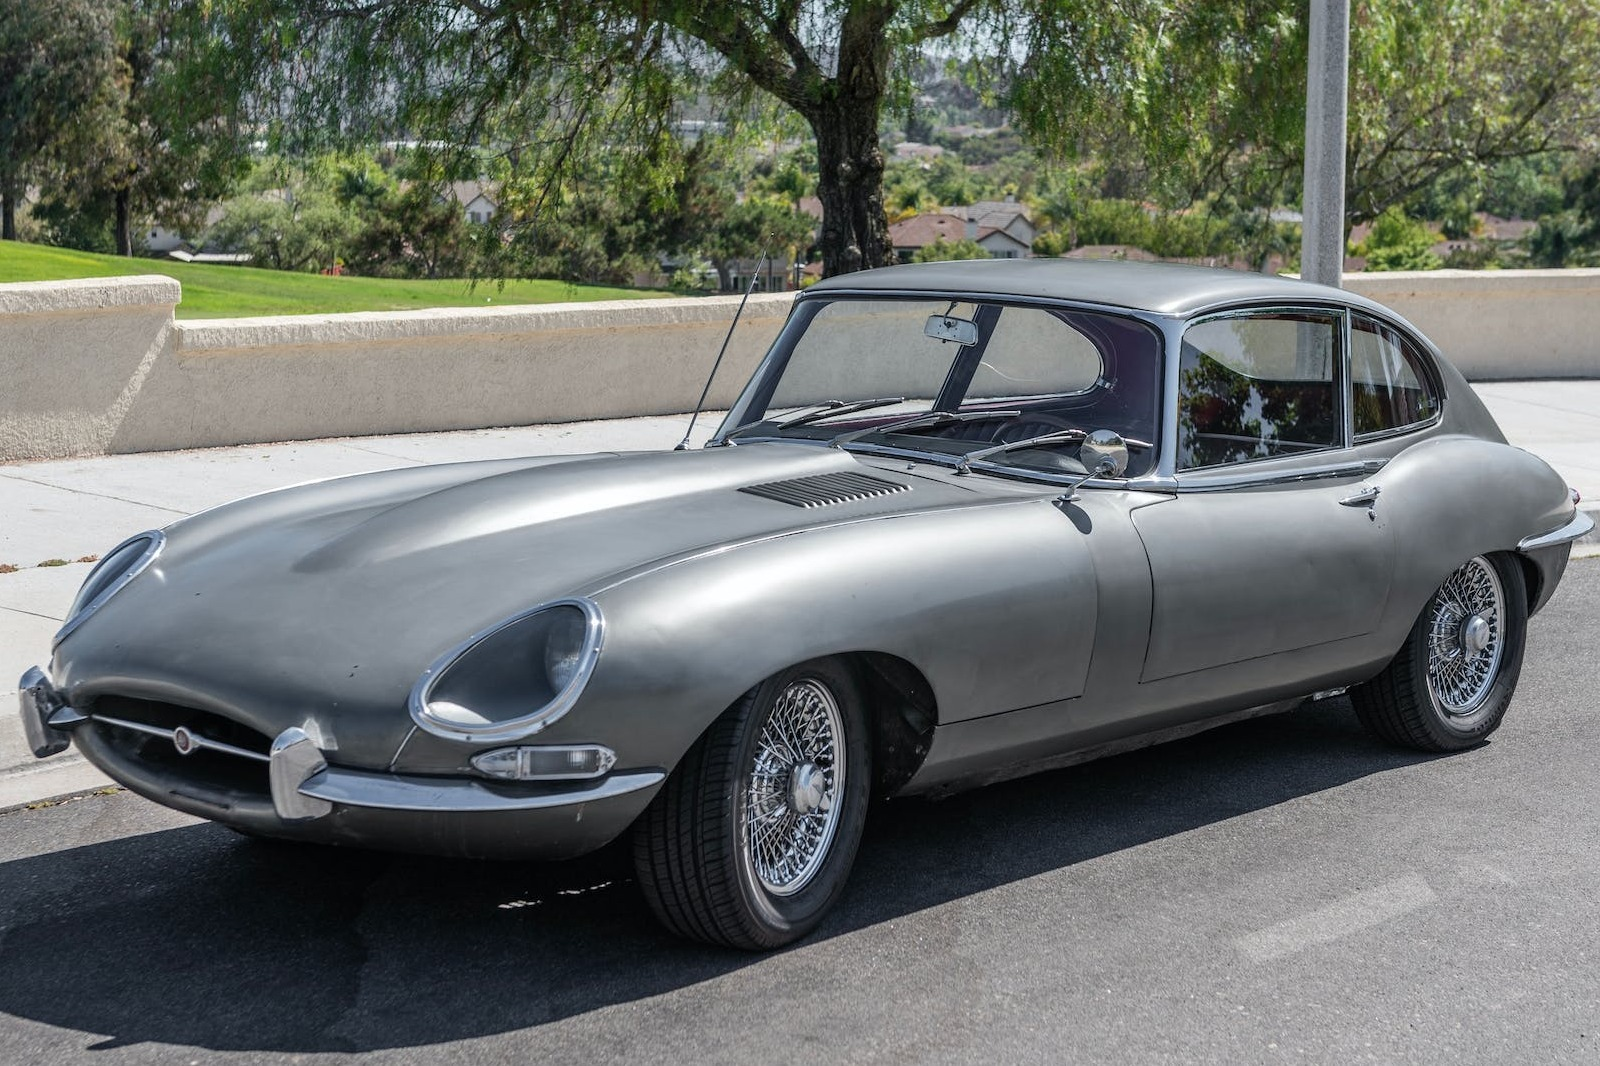 Protecting and preserving an icon - 1966 JAGUAR E-TYPE